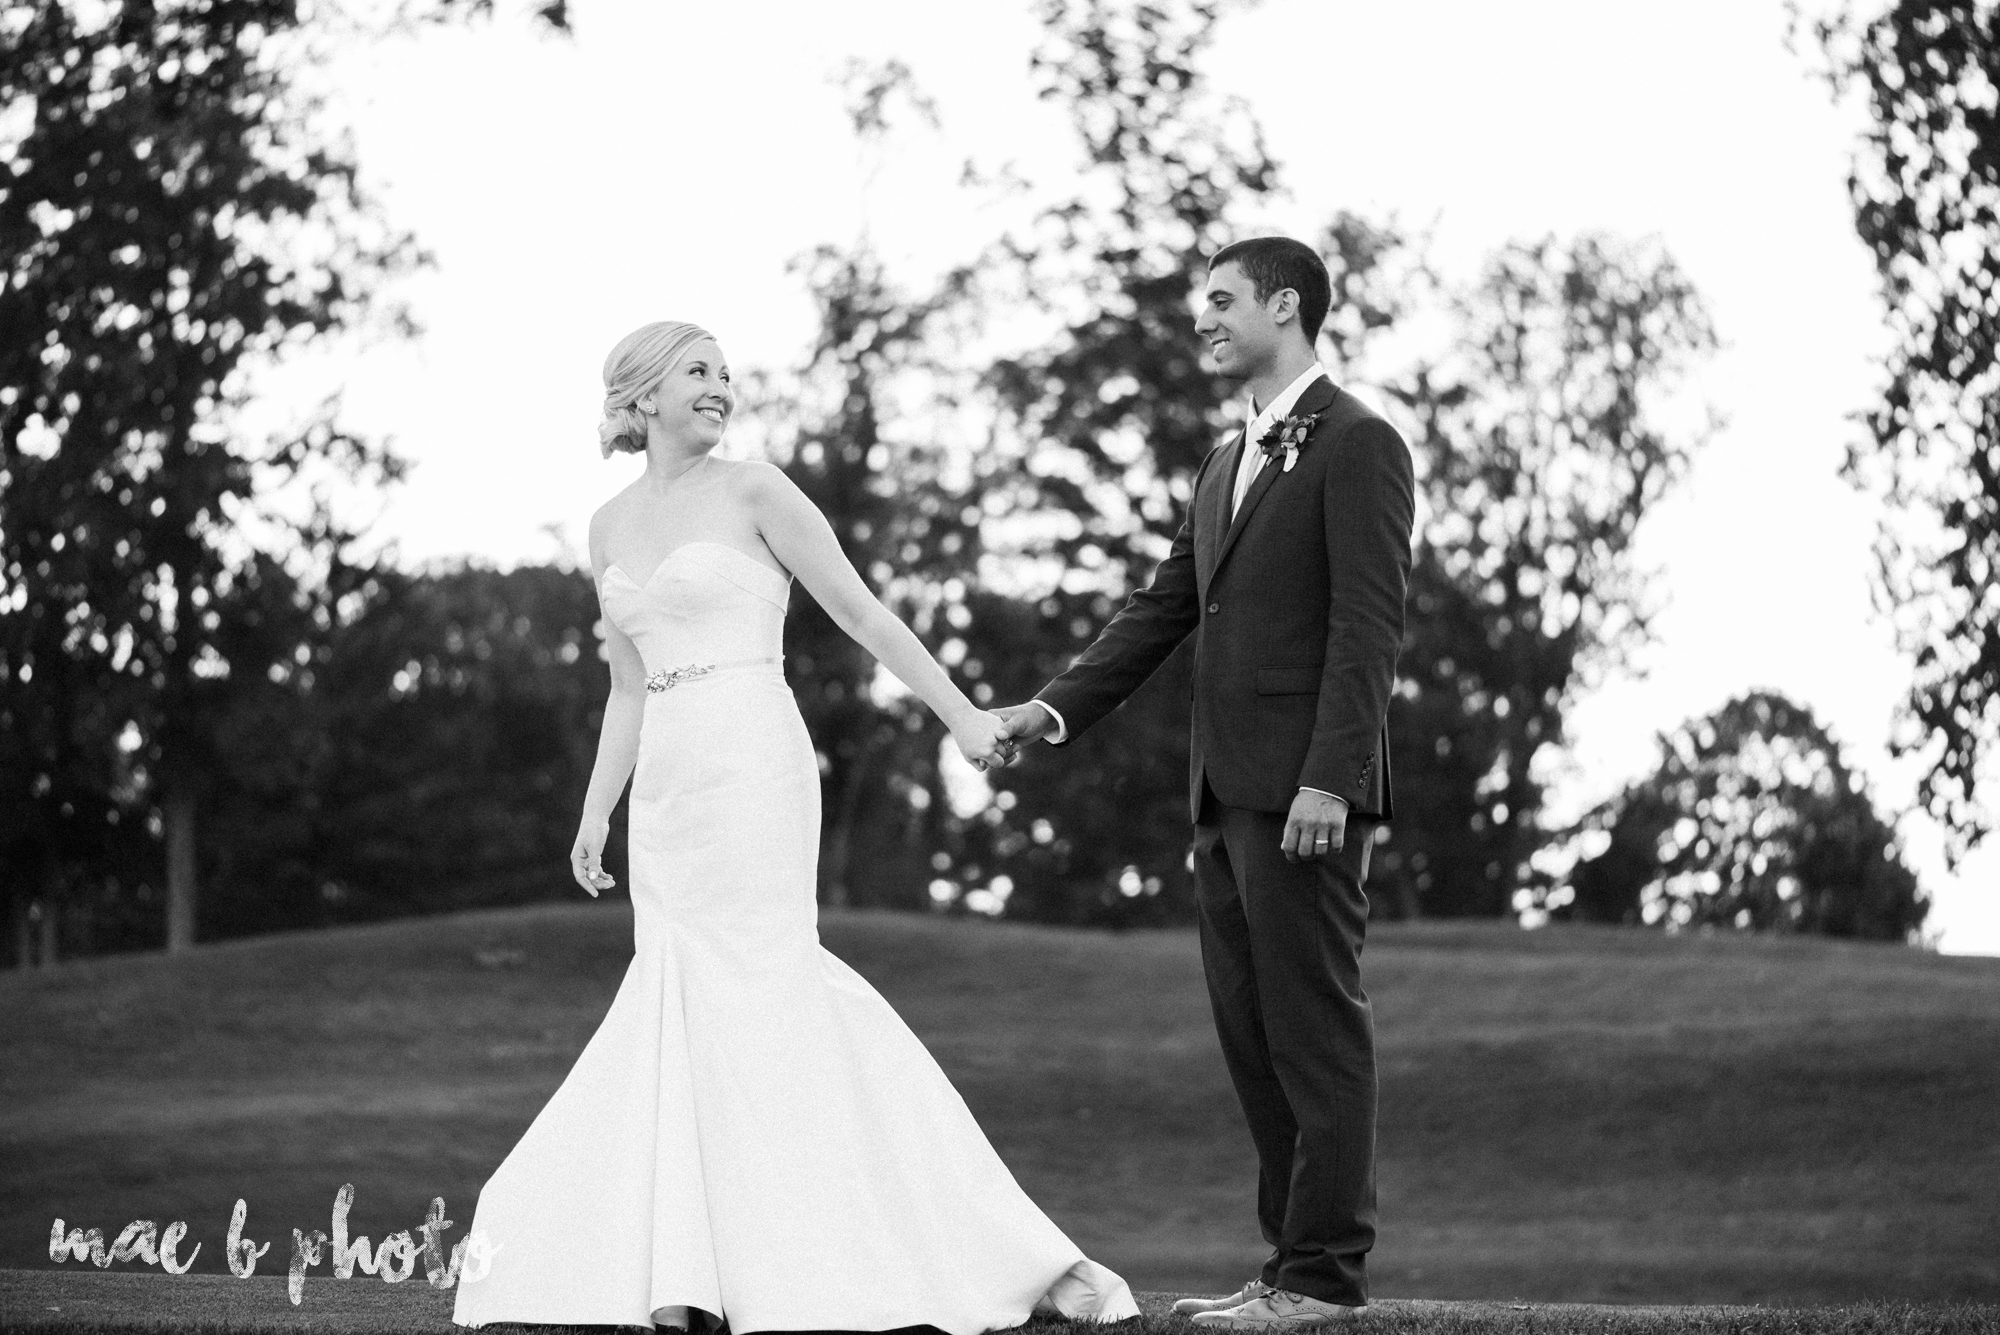 emily and michael's industrial chic summer country club wedding at the lake club in poland ohio photographed by cleveland wedding photographer mae b photo-122.jpg